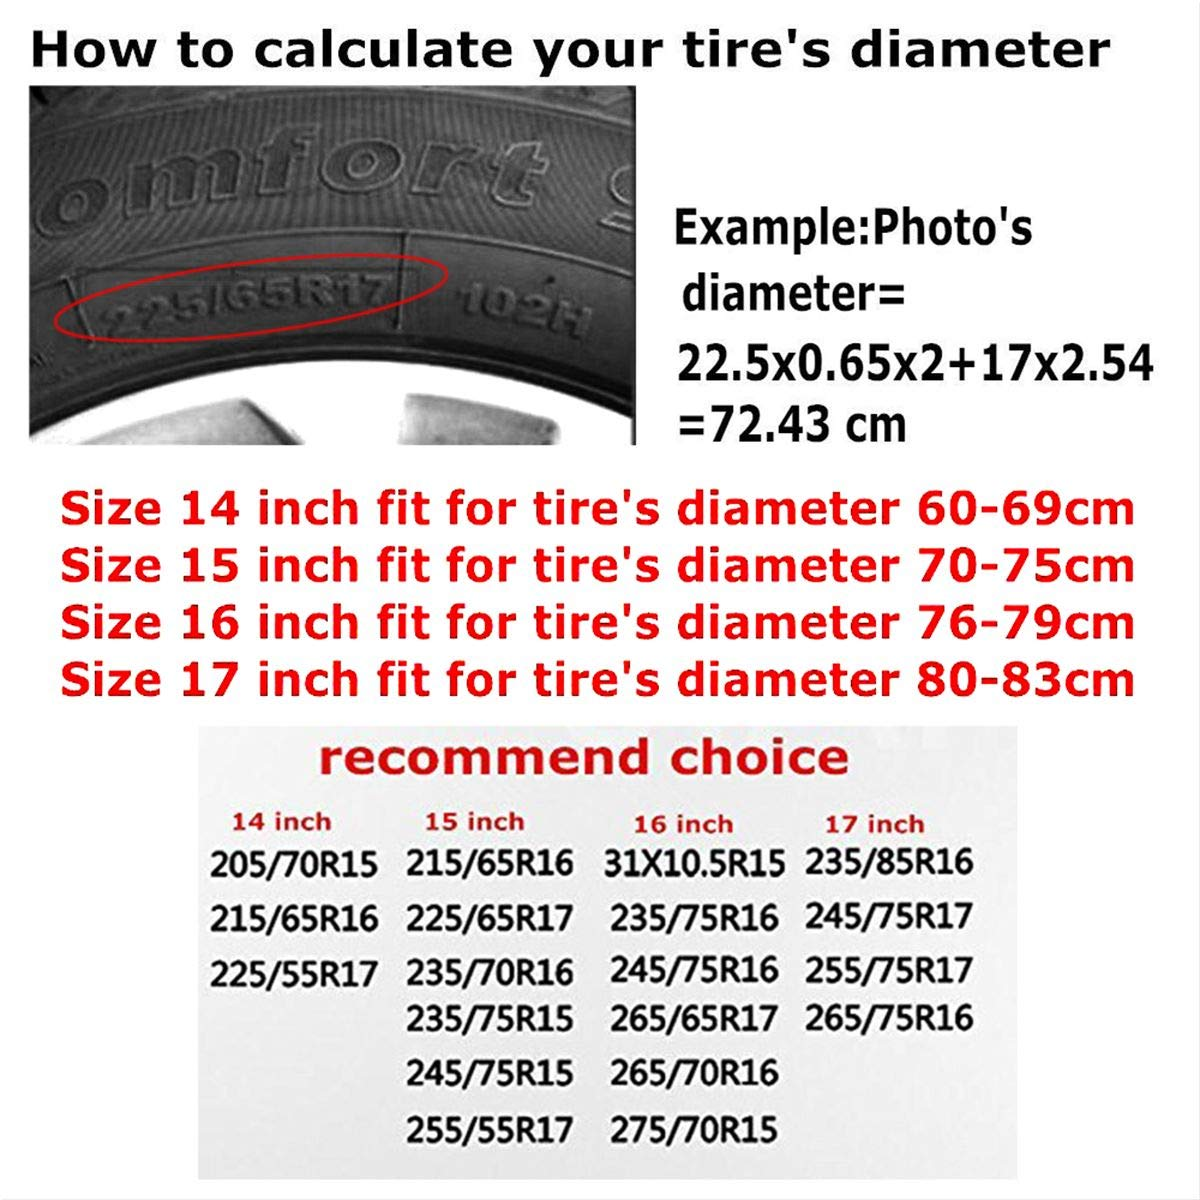 Kanteband Spare Tire Cover Pittsburgh Steelers Weatherproof Tire Protectors Universal Spare Wheel Tire Cover Fit for Jeep SUV Truck and Many Vehicle Trailer RV